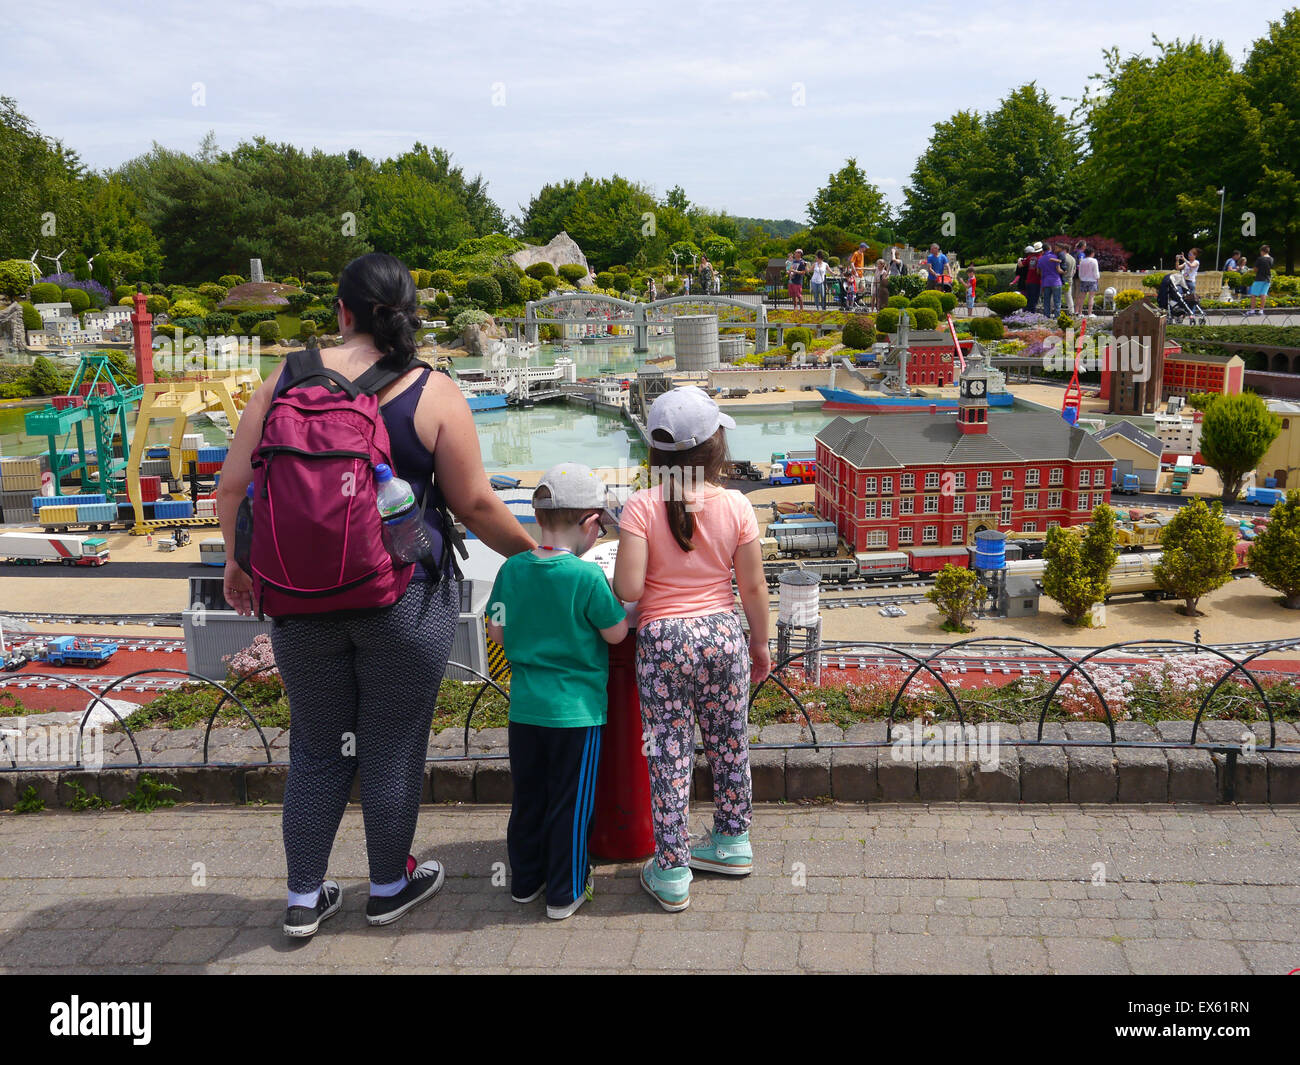 Visitors to Legoland Windsor admire the detailed models of famous landmarks from around the world made from Lego - Stock Image